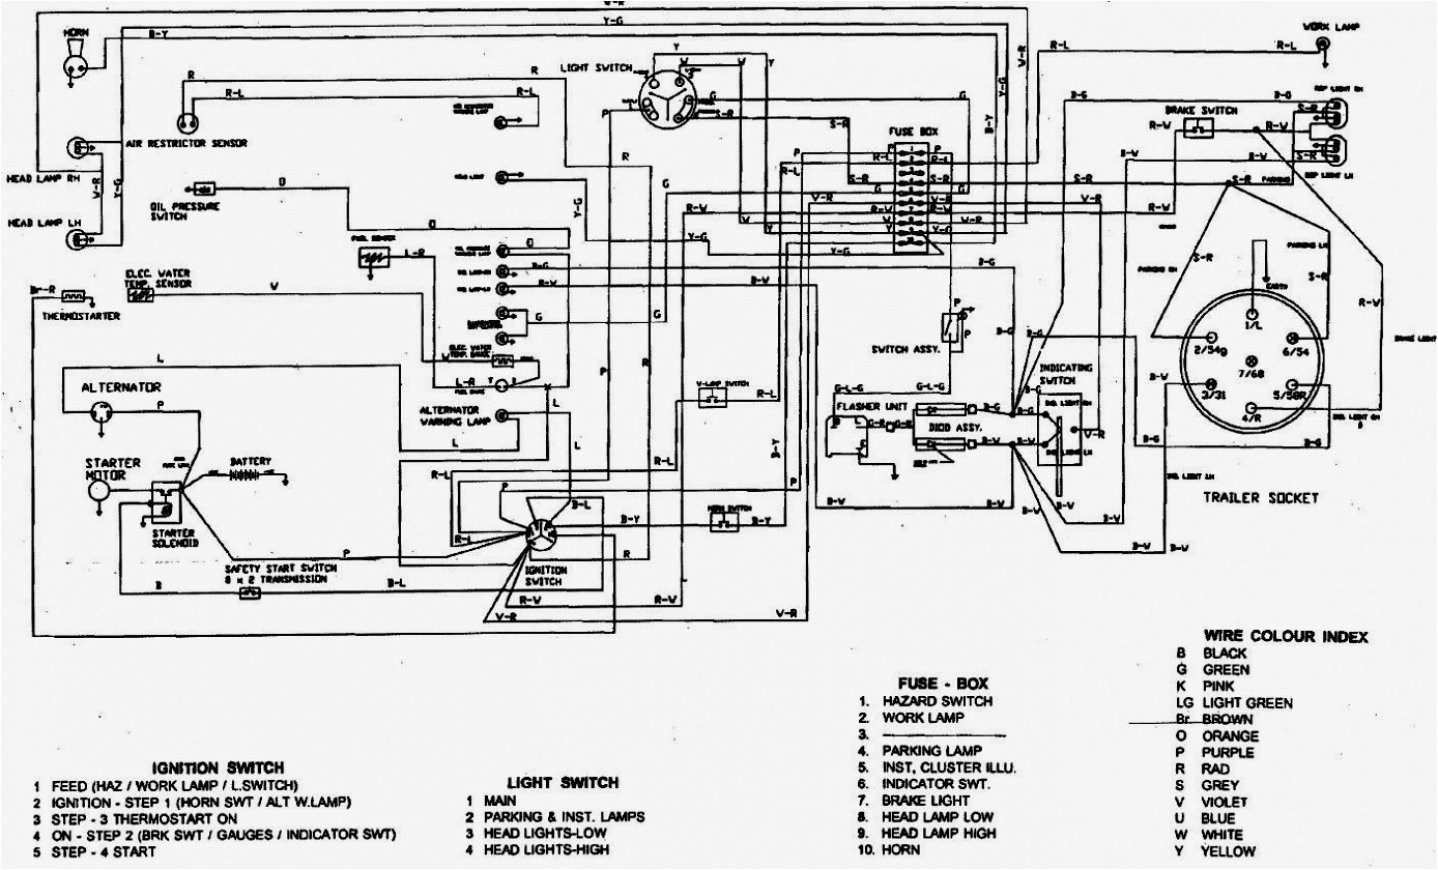 John Deere Model 318 Wiring Diagram Ac 9138 for 420 Garden Tractor Wiring Free Diagram